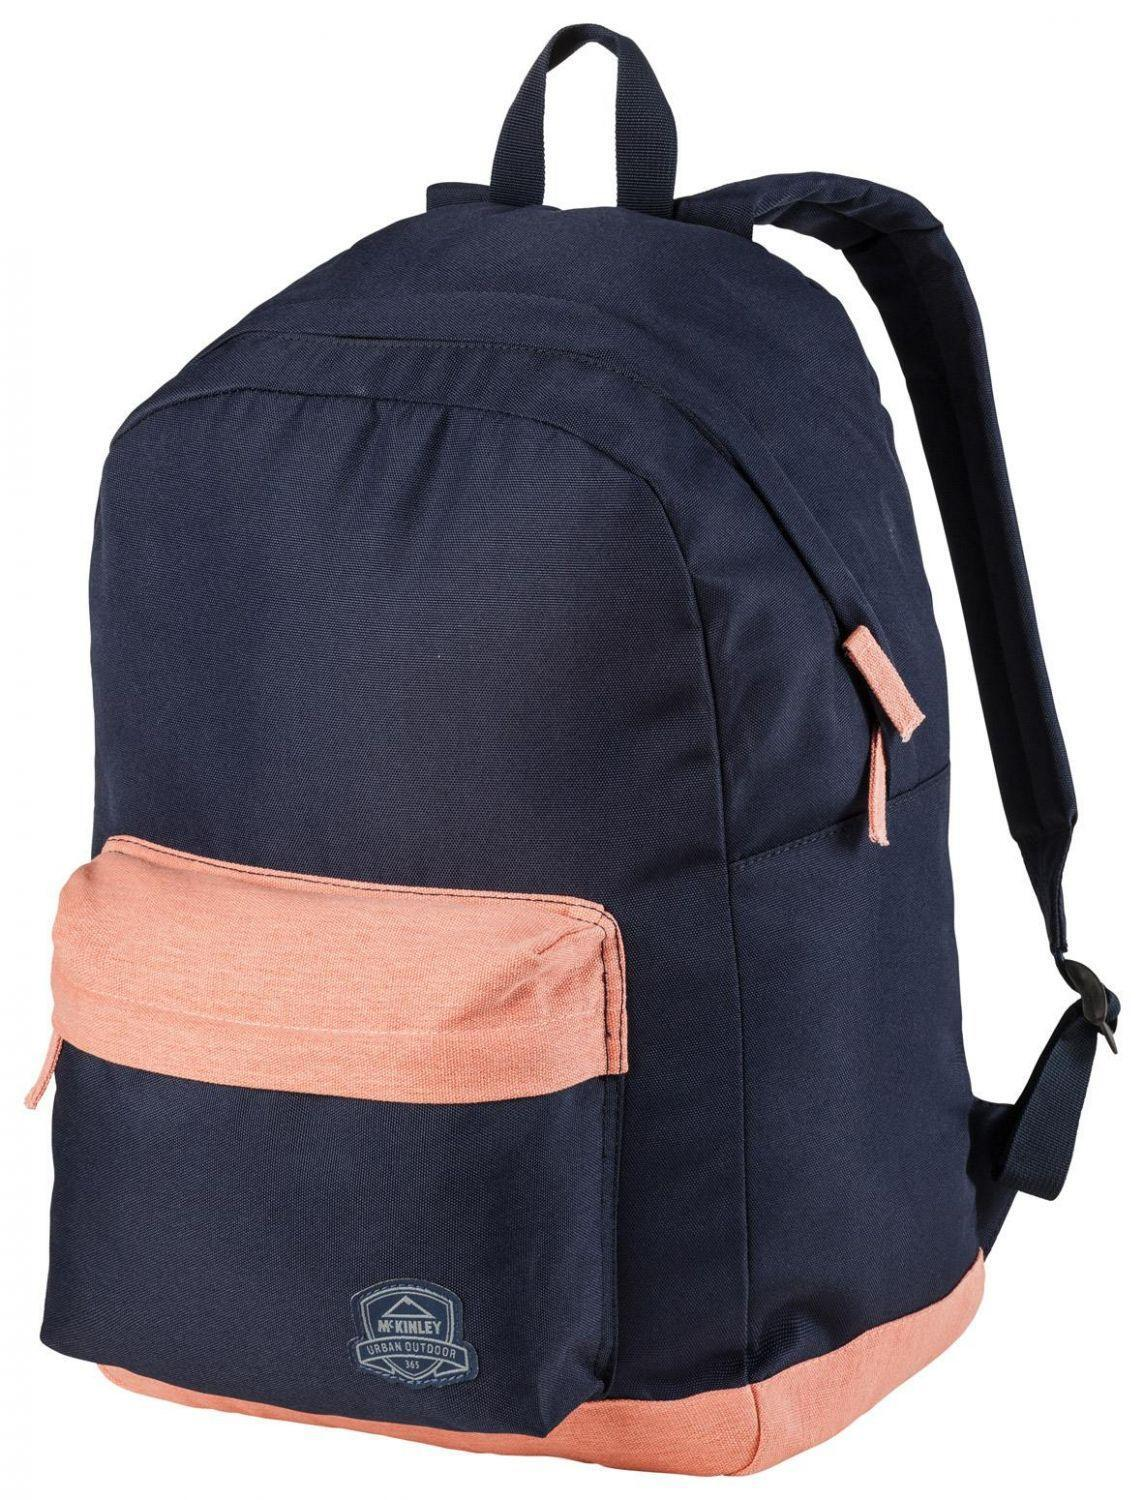 mckinley-woodburry-rucksack-farbe-901-navy-coral-